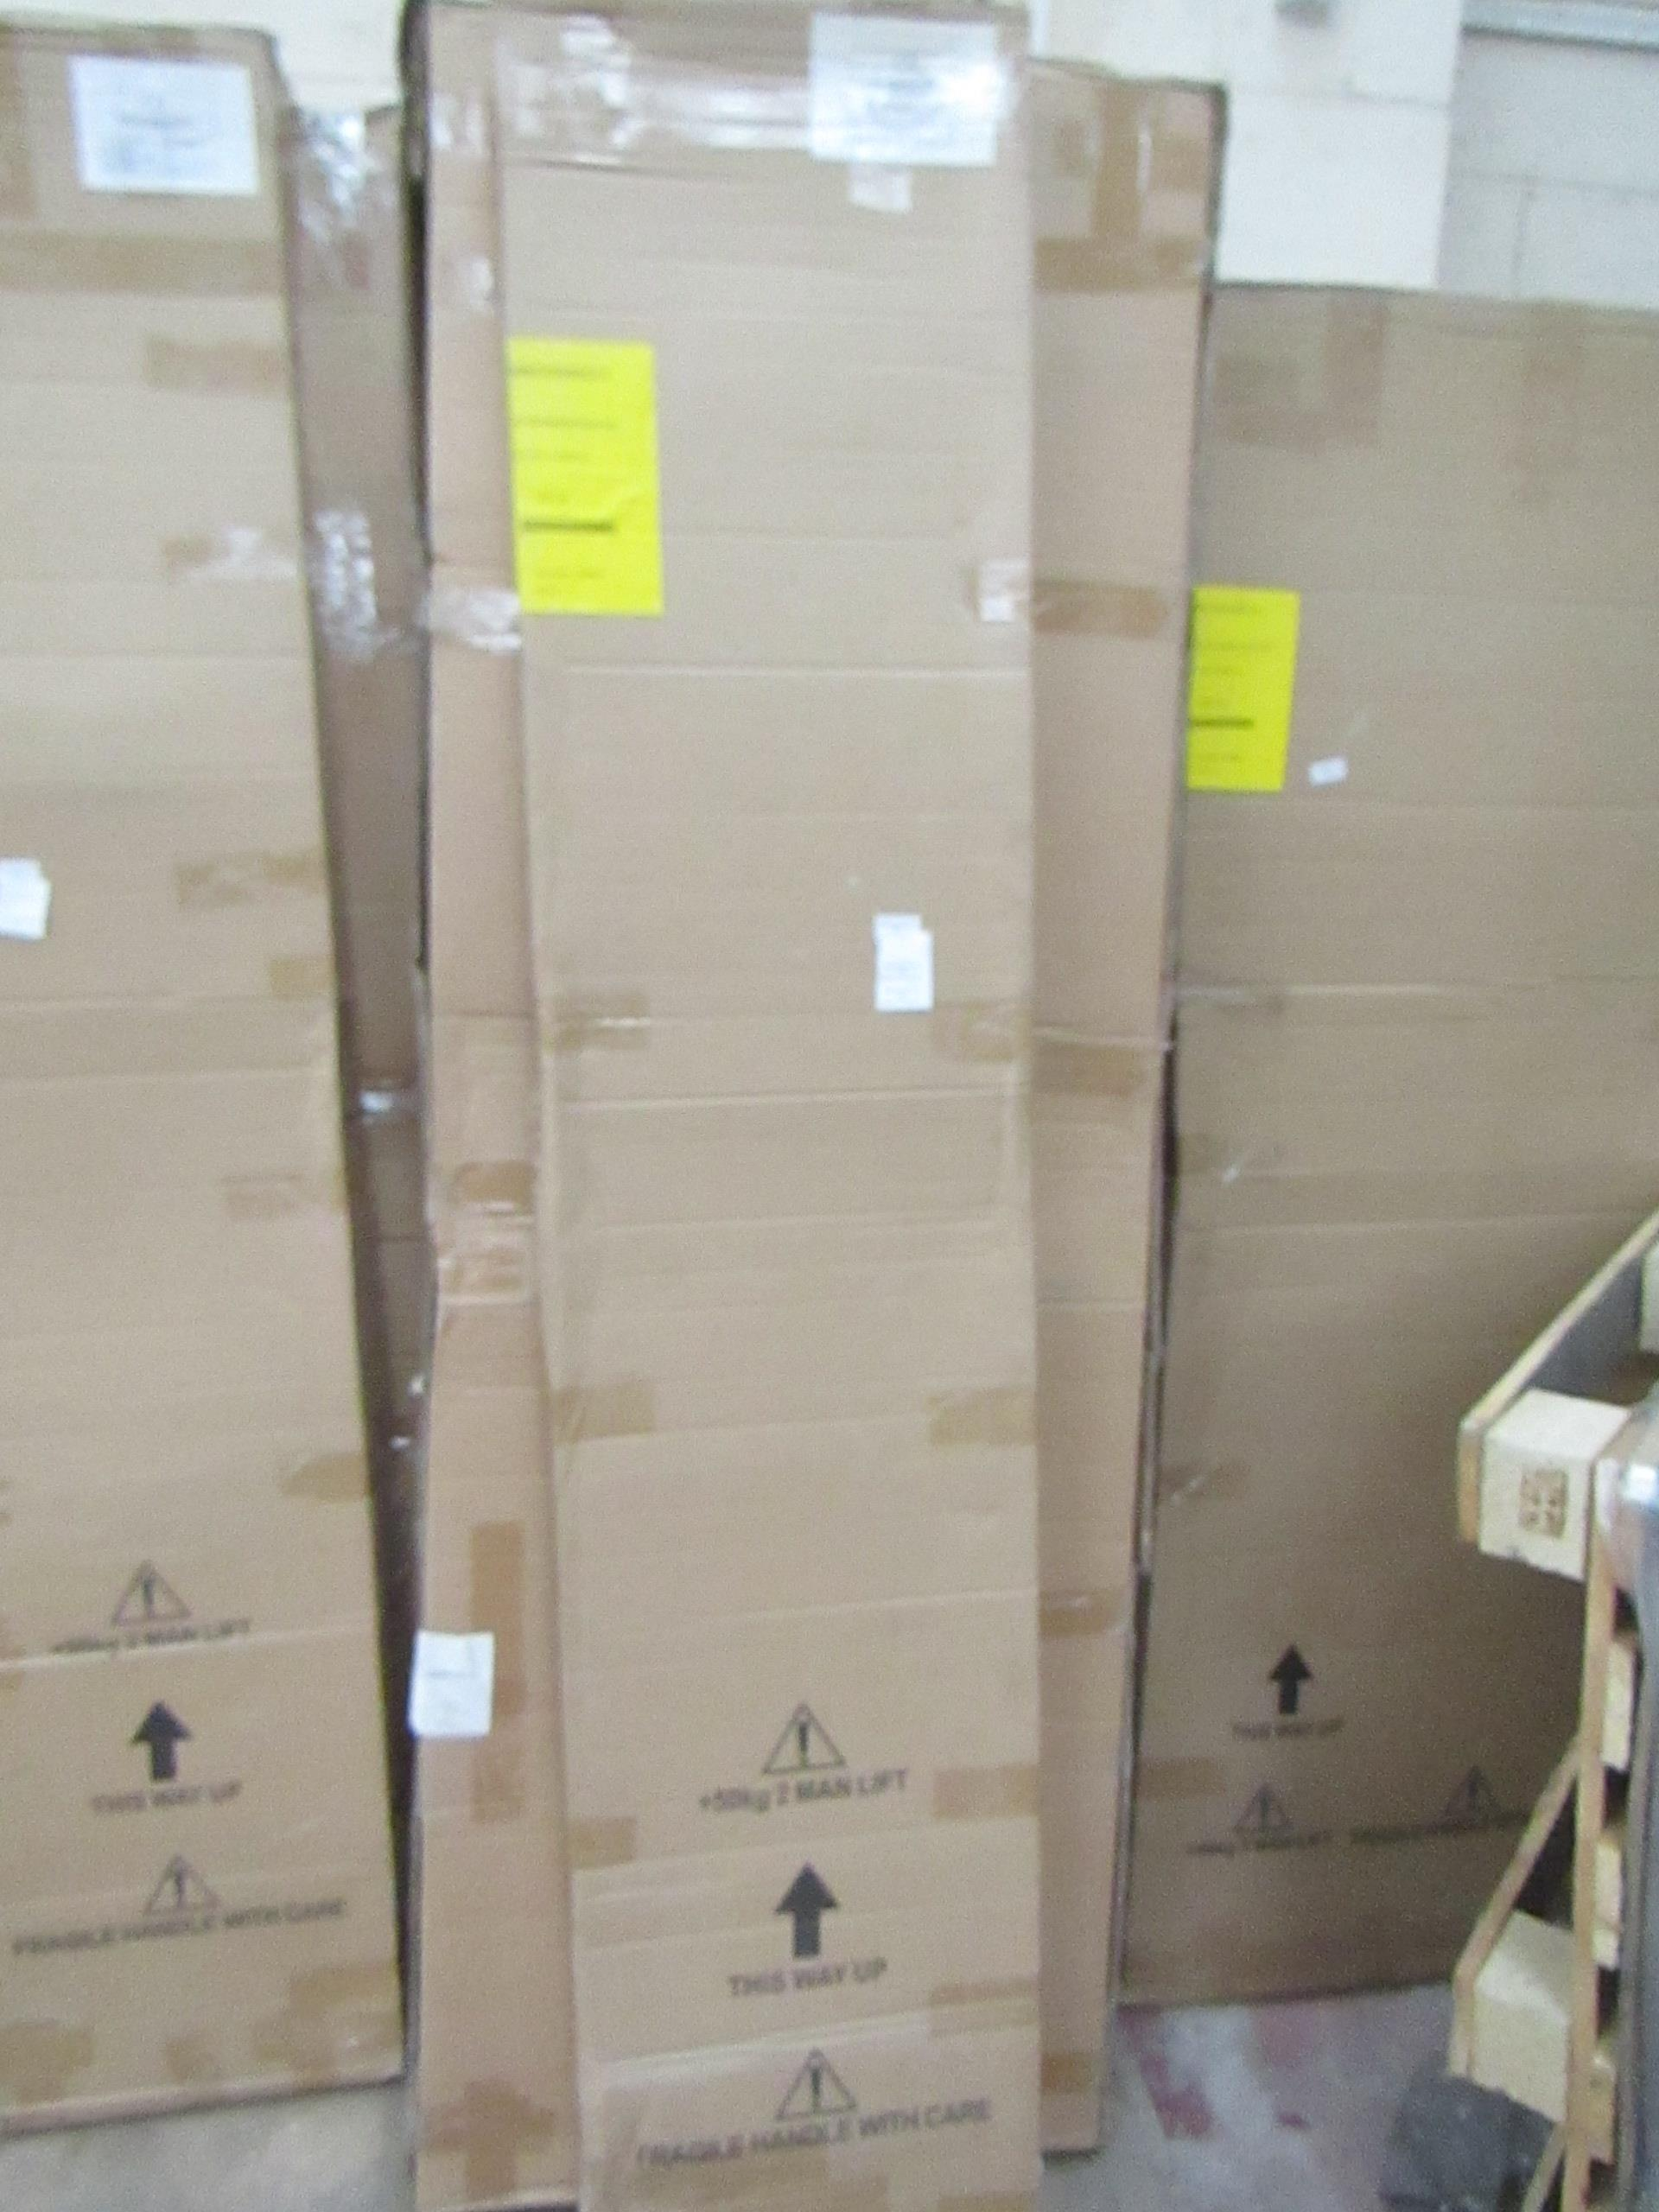 Lot 55 - Manhattan glass Quad shower enclosure (no Tray), 800x800m, unused and boxed, comes in 2 boxes